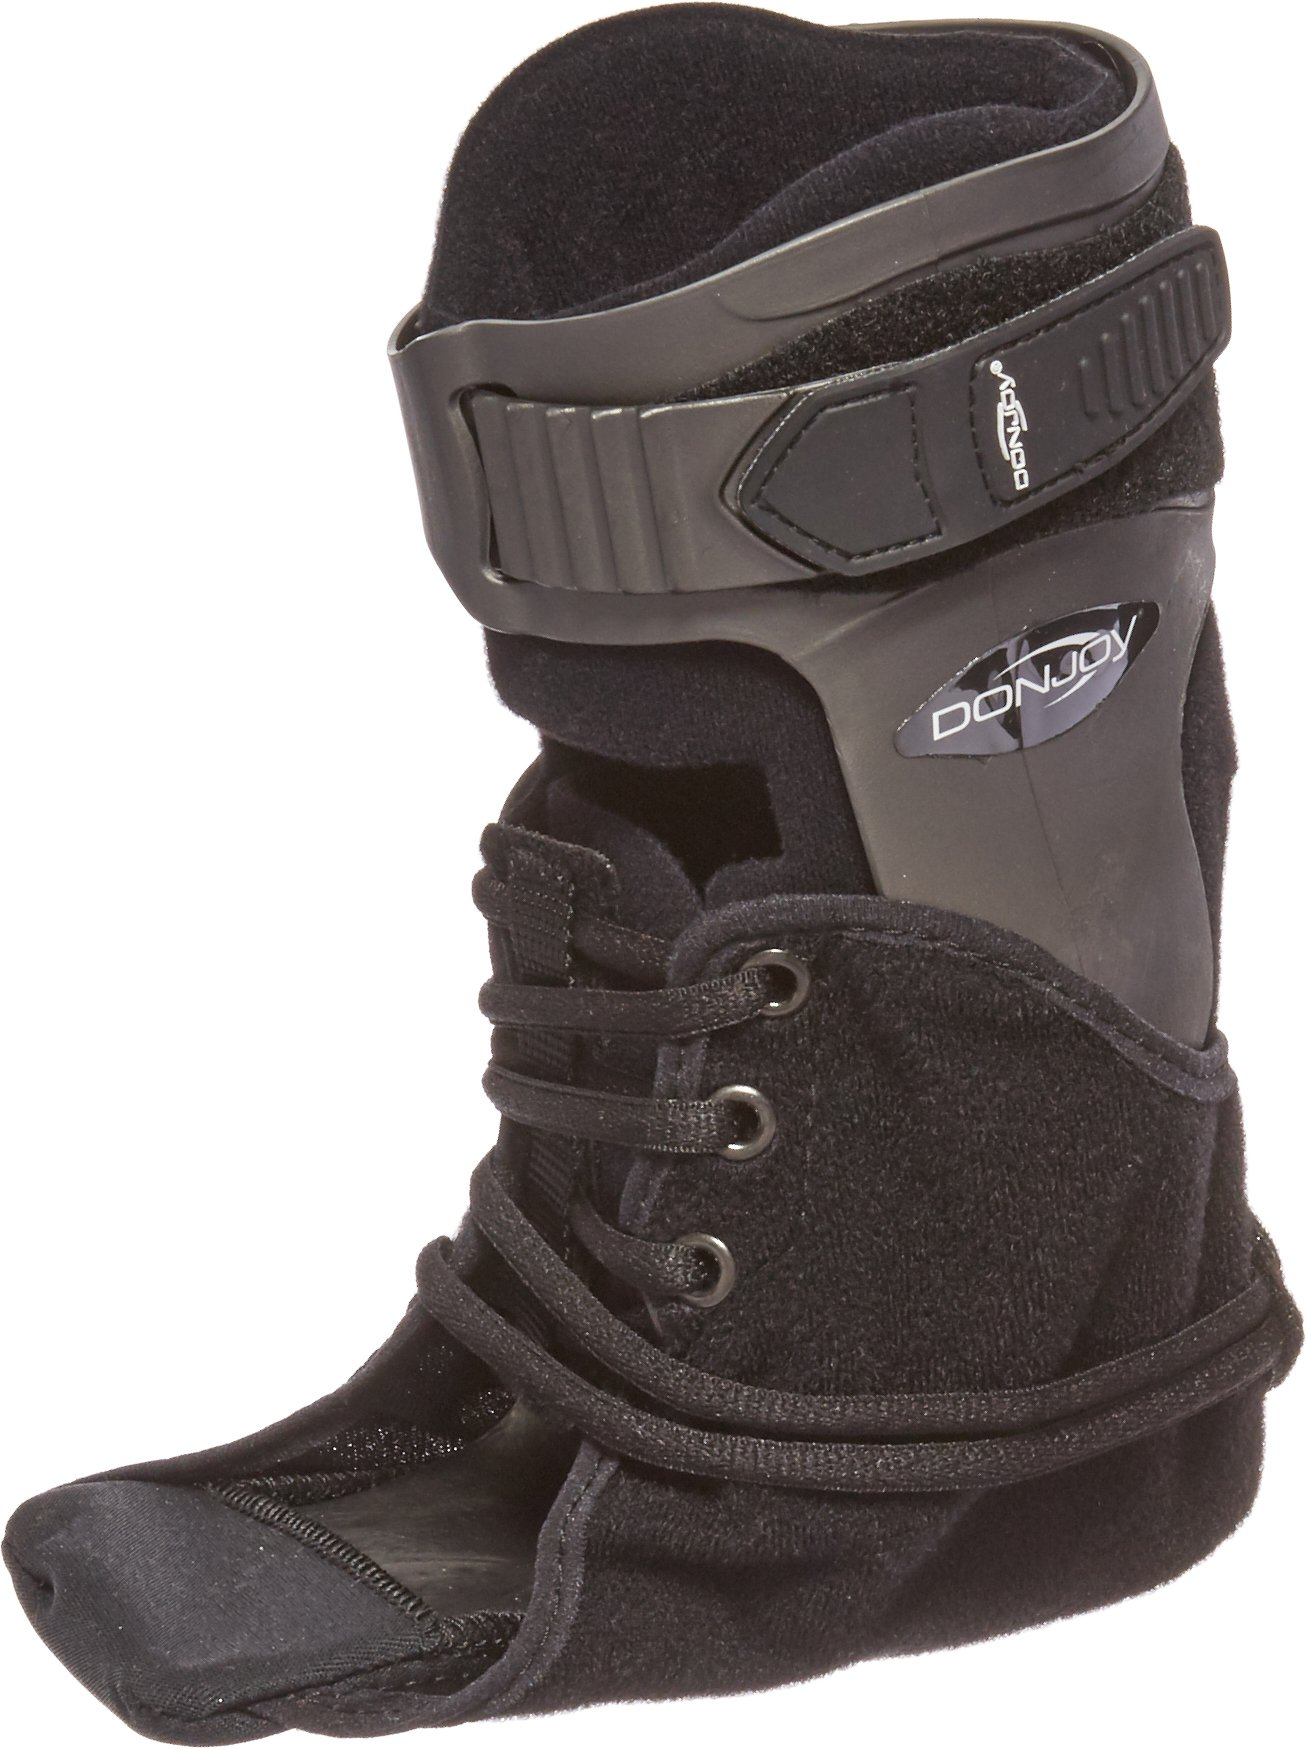 Donjoy 11-1498-4-06000 Velocity Ankle Brace, Extra Support, Right, Large, Black by DonJoy